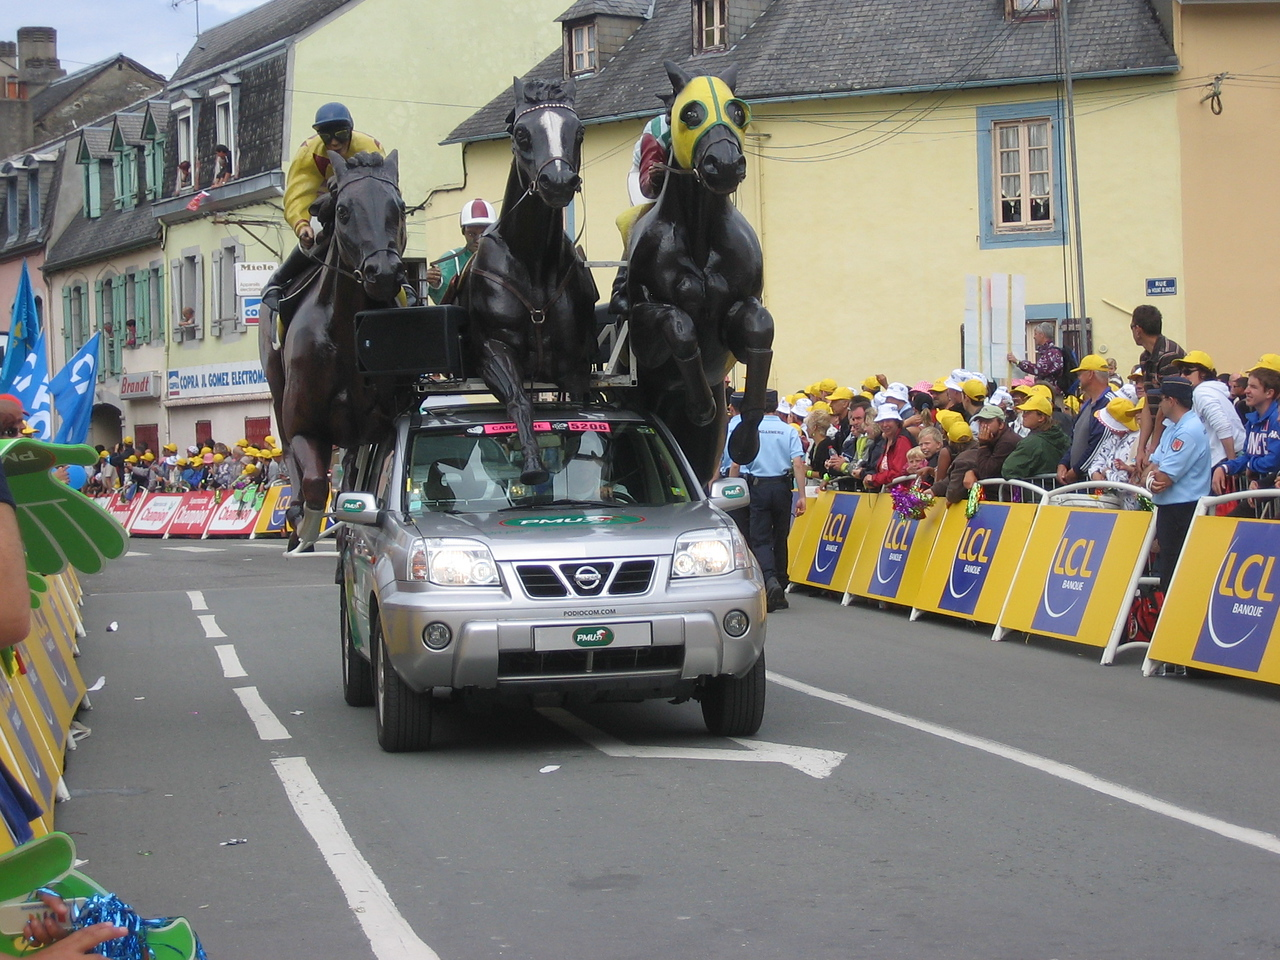 PMU seemed to be some sort of horse racing company ?? They sponsor the green jersey and handed out the big green hands for people to wave during the sprint finish.